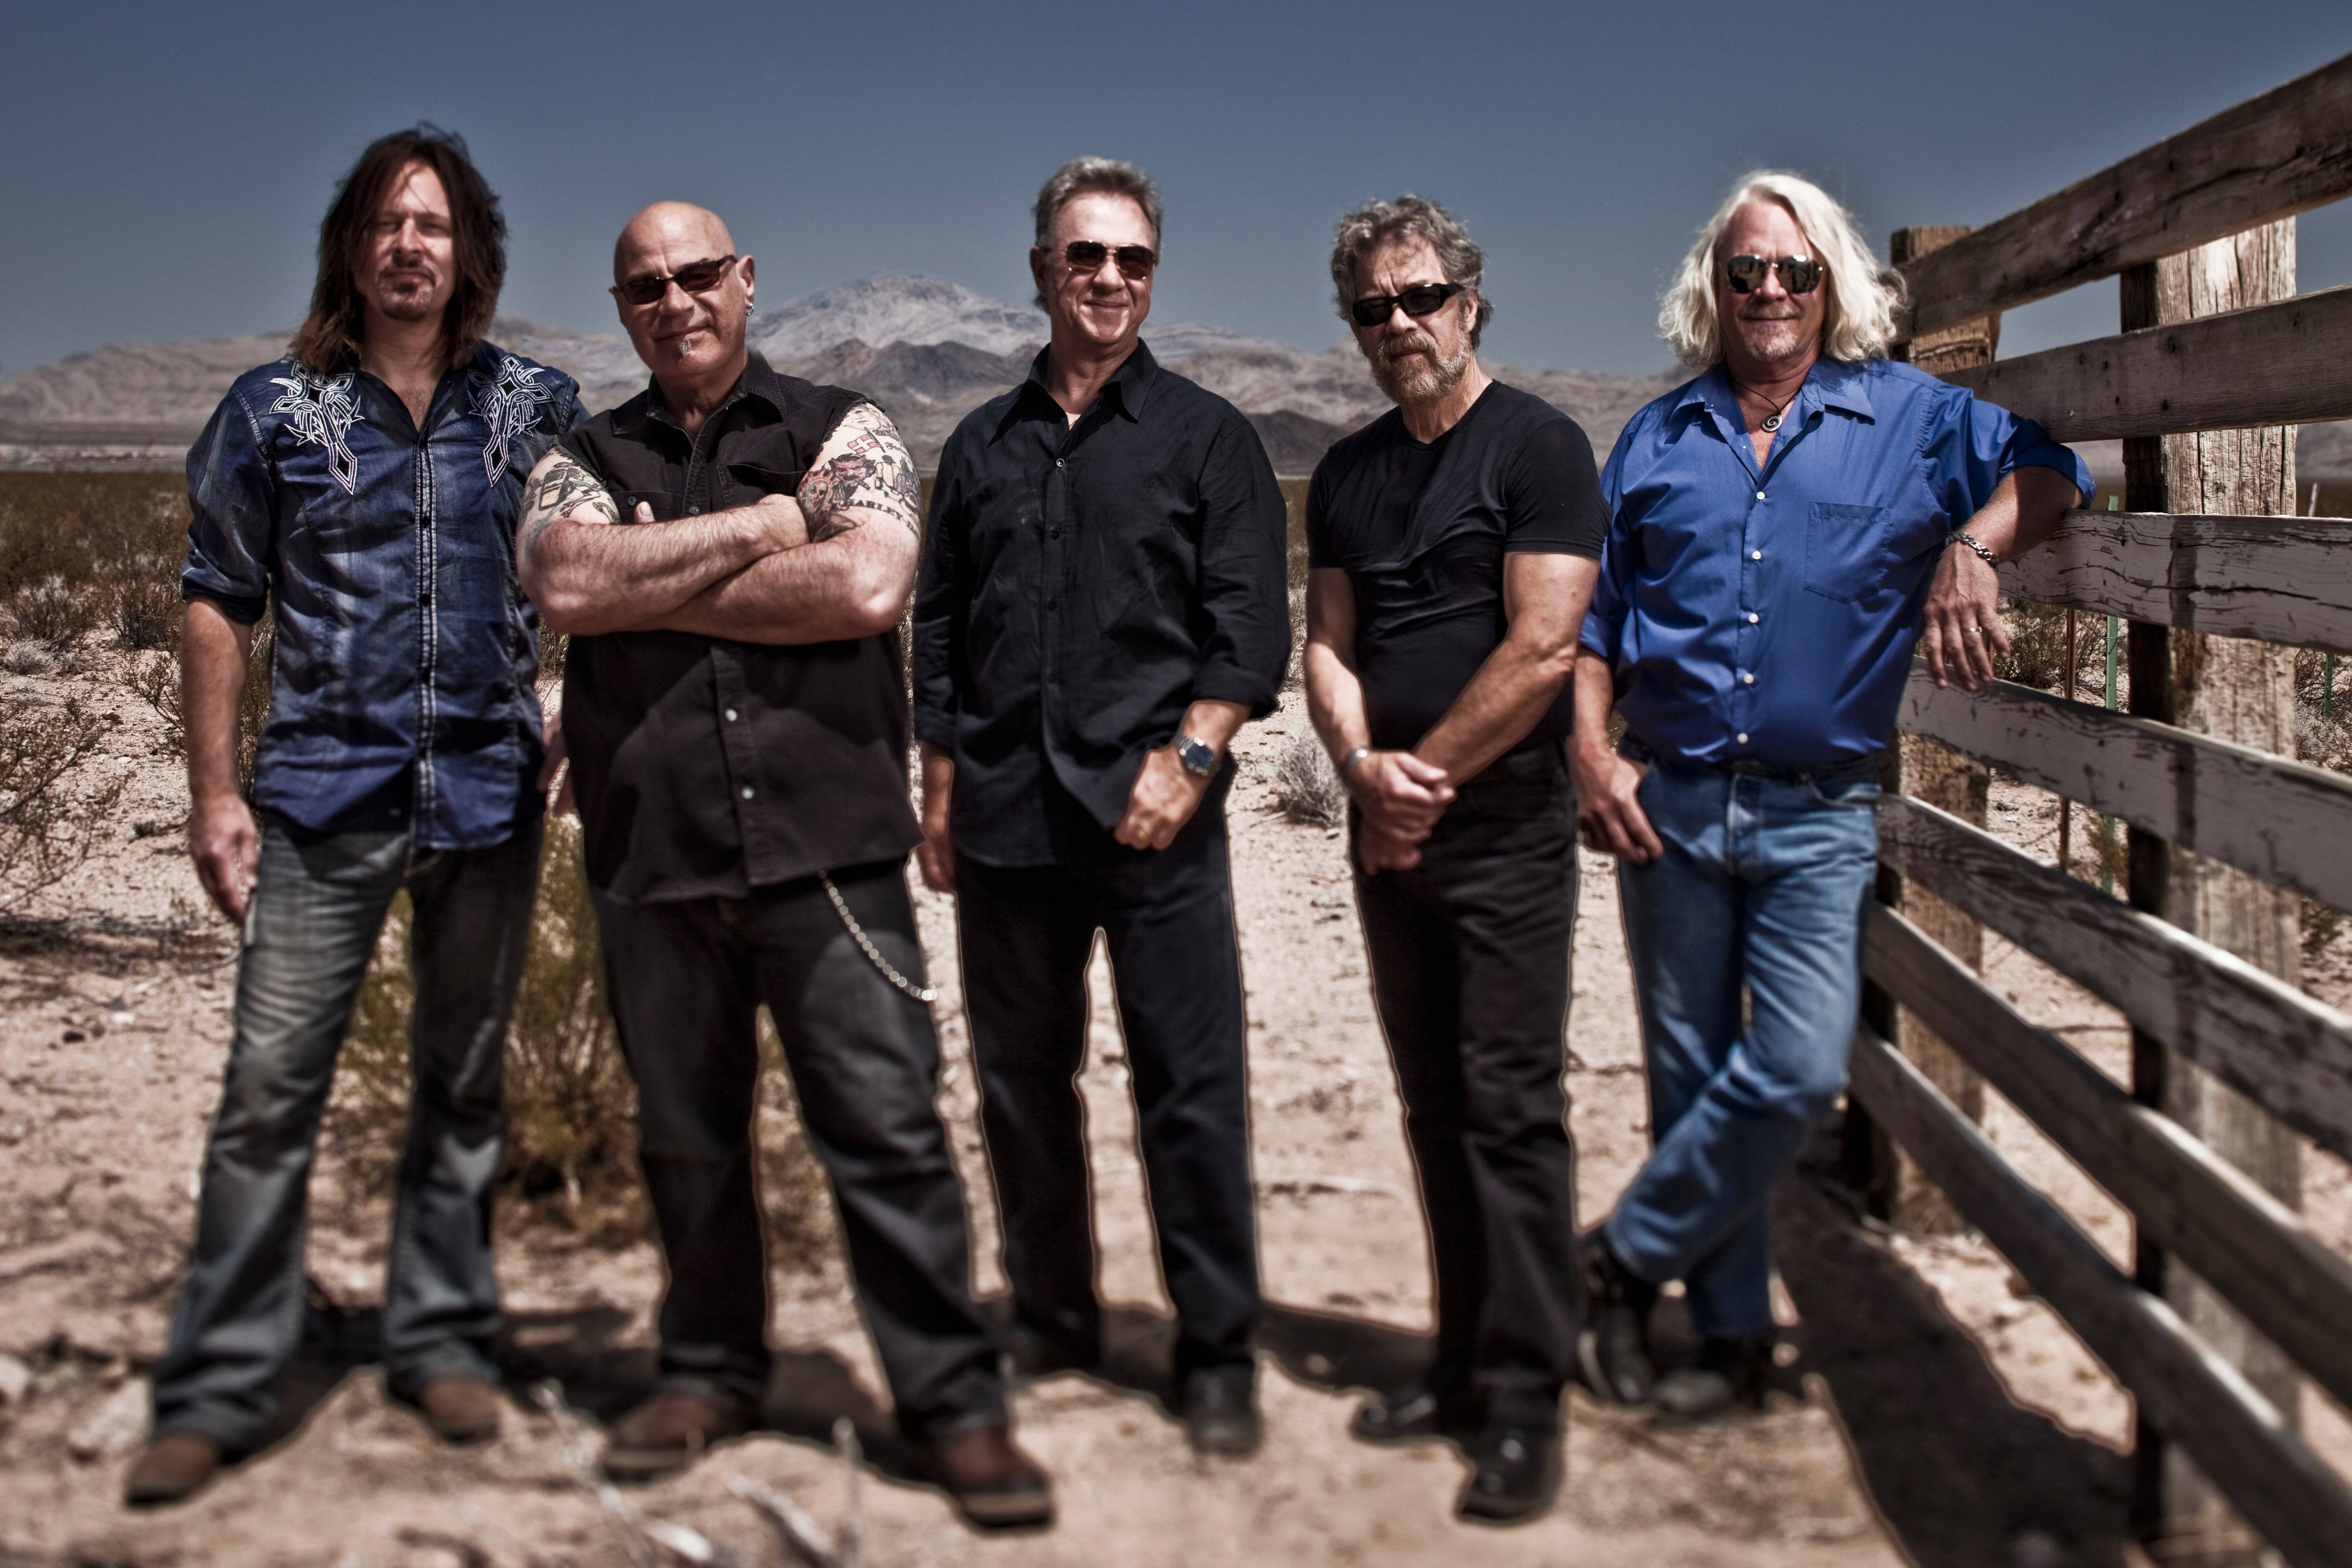 Creedence Clearwater Revisited plays the Arcada Theatre in St. Charles at 8 p.m. Saturday, Feb. 20.